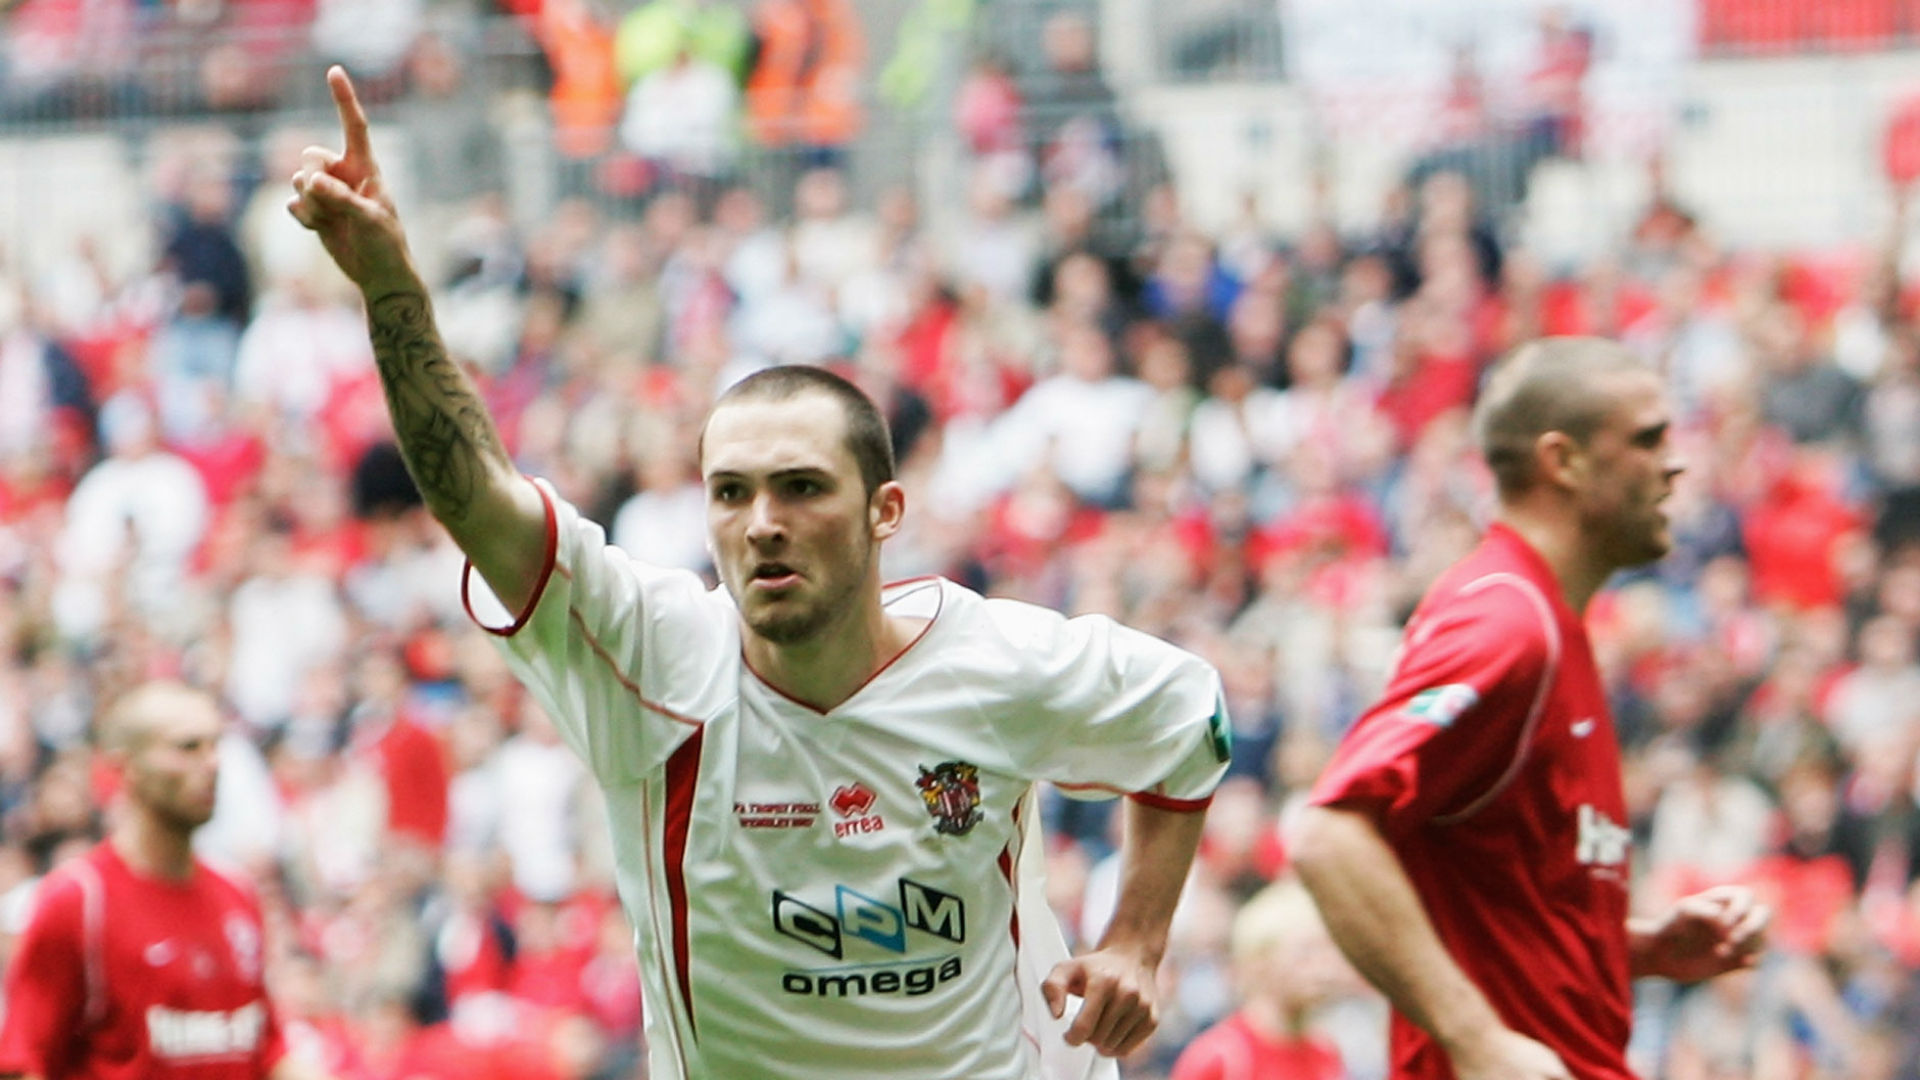 Mitchell Cole Stevenage